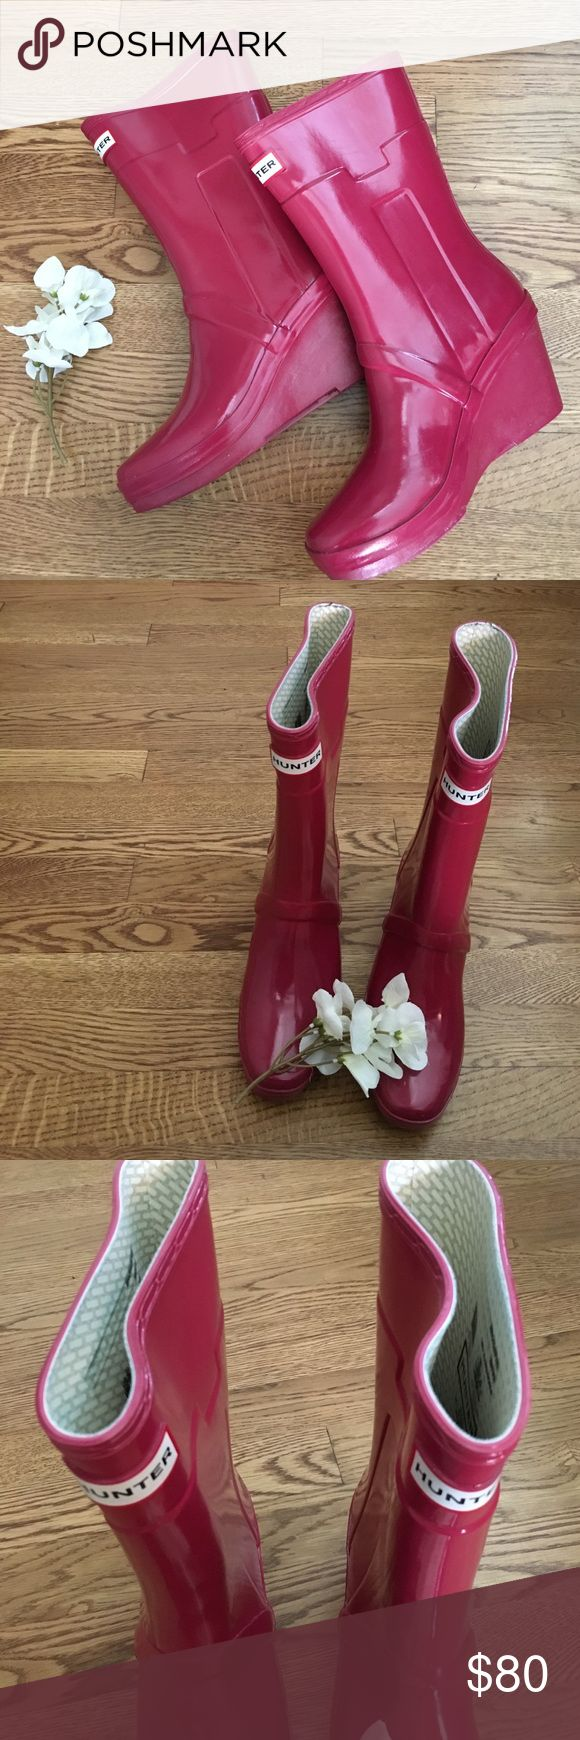 New Listing! Hunter Kellen Wedge Heel Boots Adorable Hunter Kellen Wedge Heel Rain Boots. Worn for one season. Size 7. Little wear on the bottom but otherwise Excellent preowned condition! Hunter Boots Shoes Winter & Rain Boots